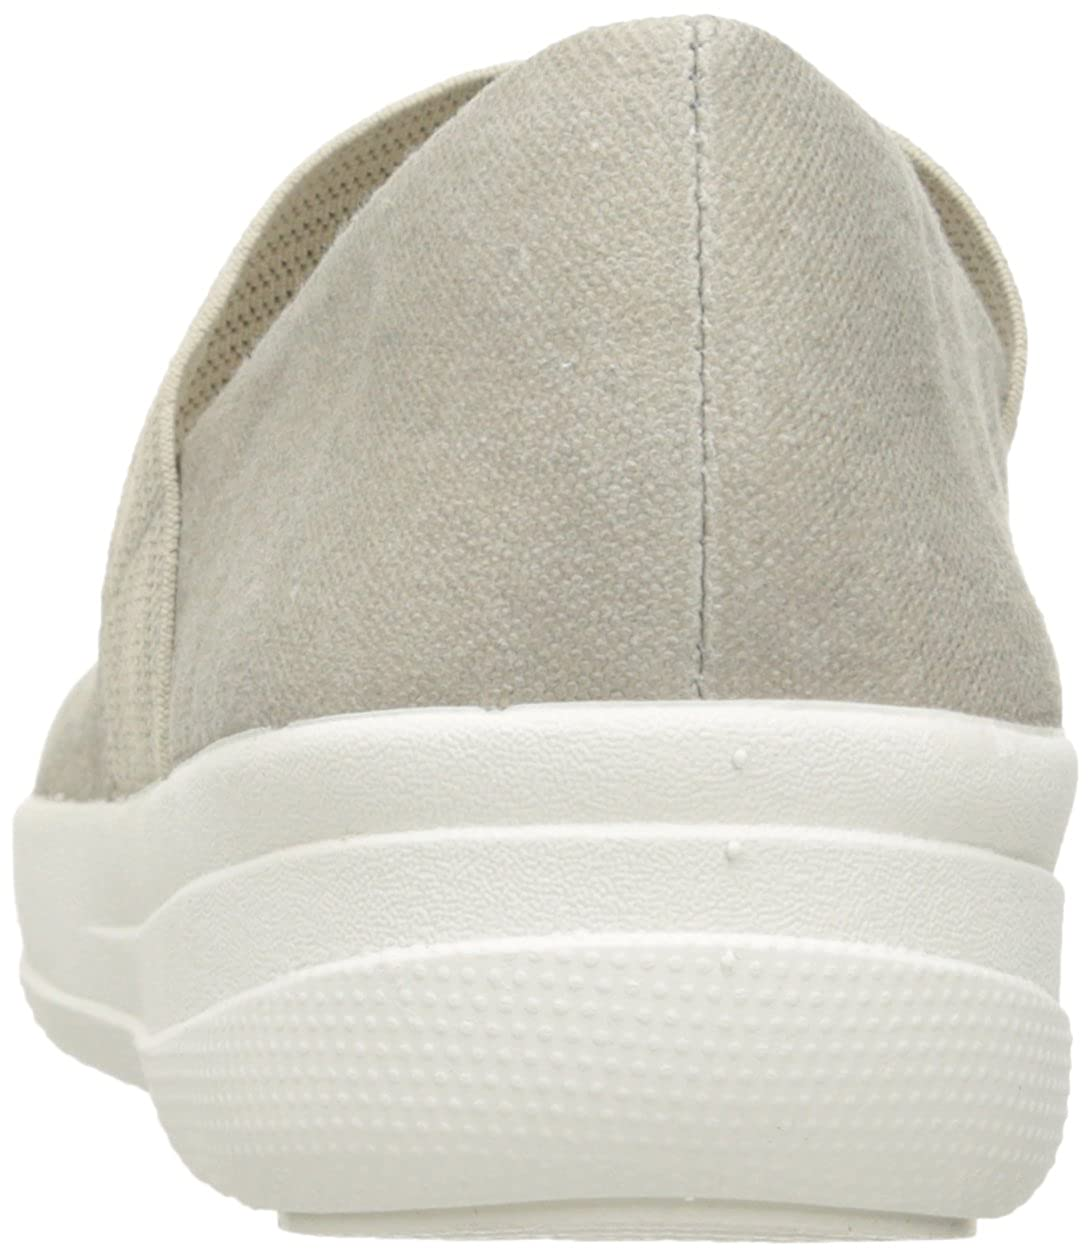 FitFlop Damen The Skinny TM Ballerinas, Z-Cross Sandale Geschlossene Ballerinas, TM ed3adf